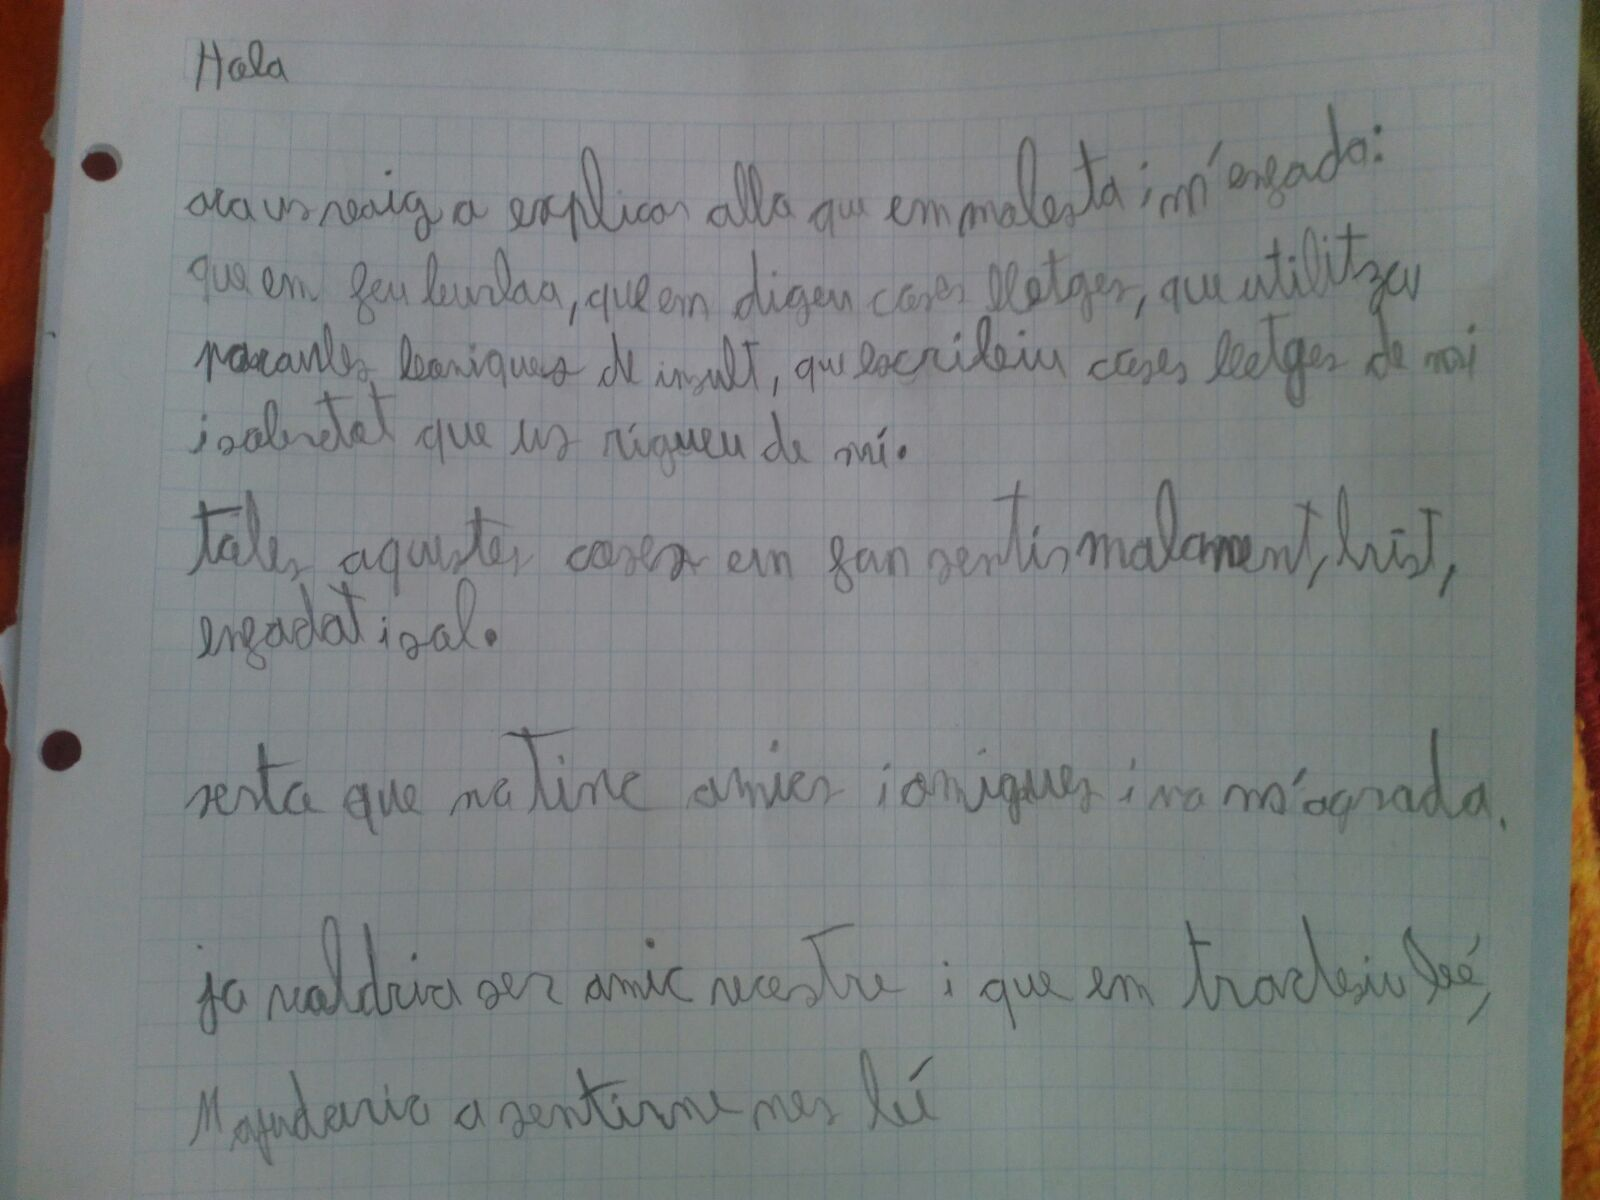 CARTA NEN PATEIX BULLYING